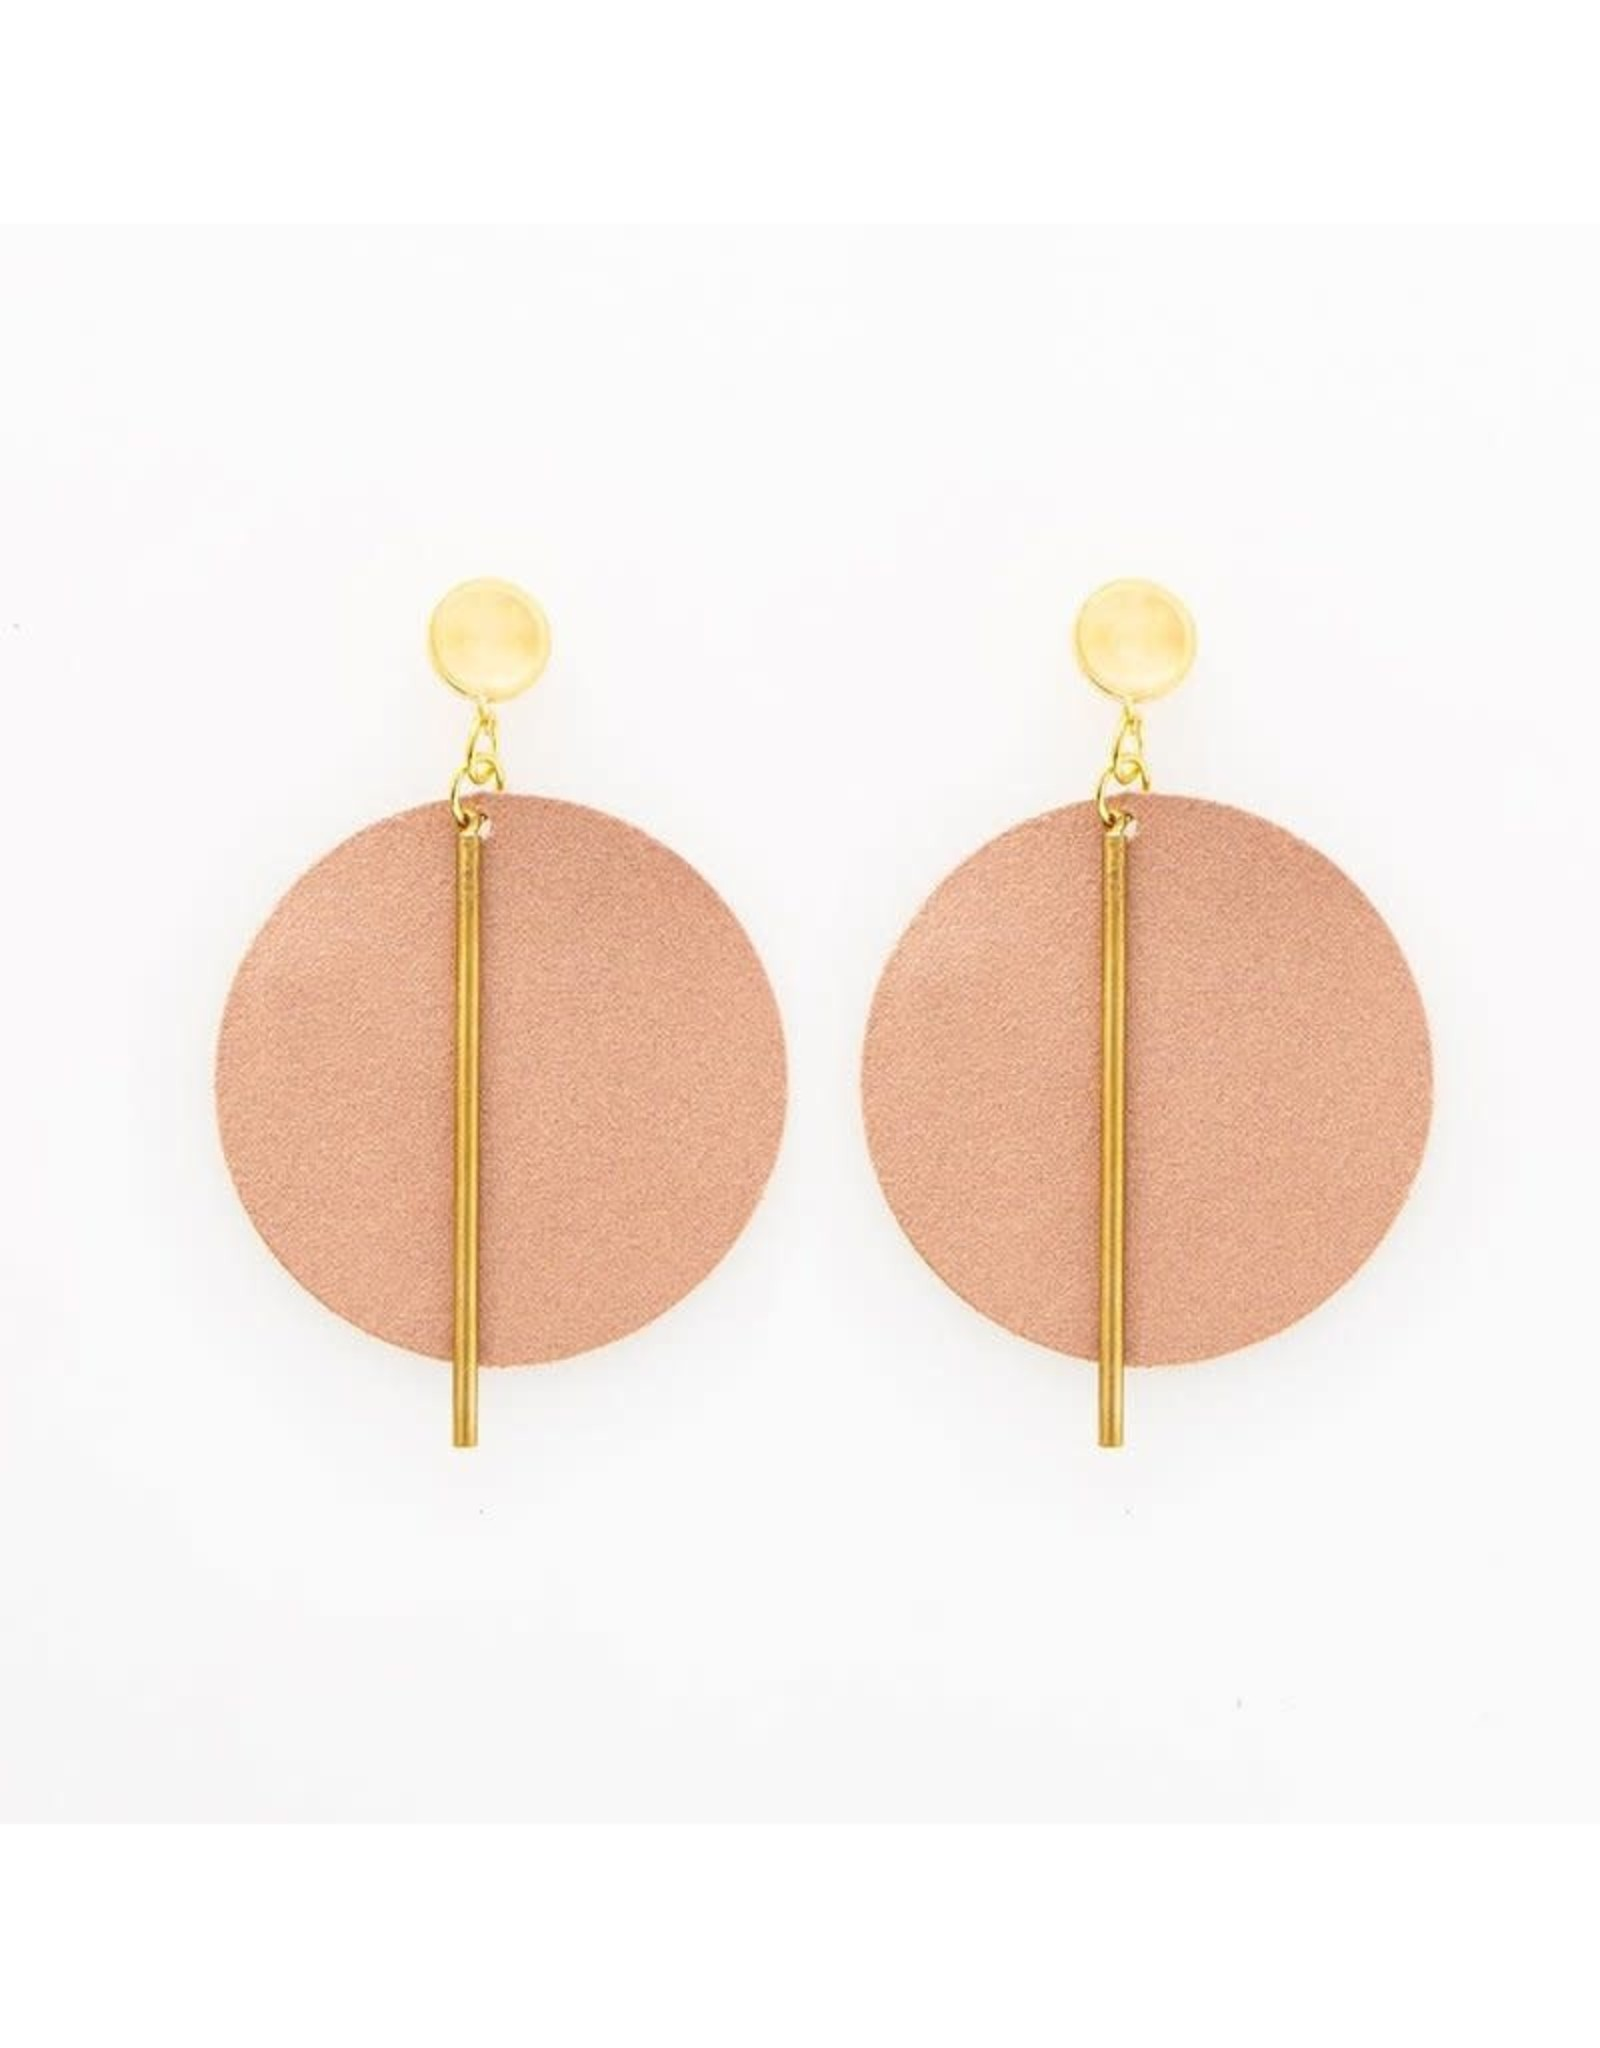 INK & ALLOY INK & ALLOY ROSE GOLD LEATHER CIRCLE EARRINGS LCER0419